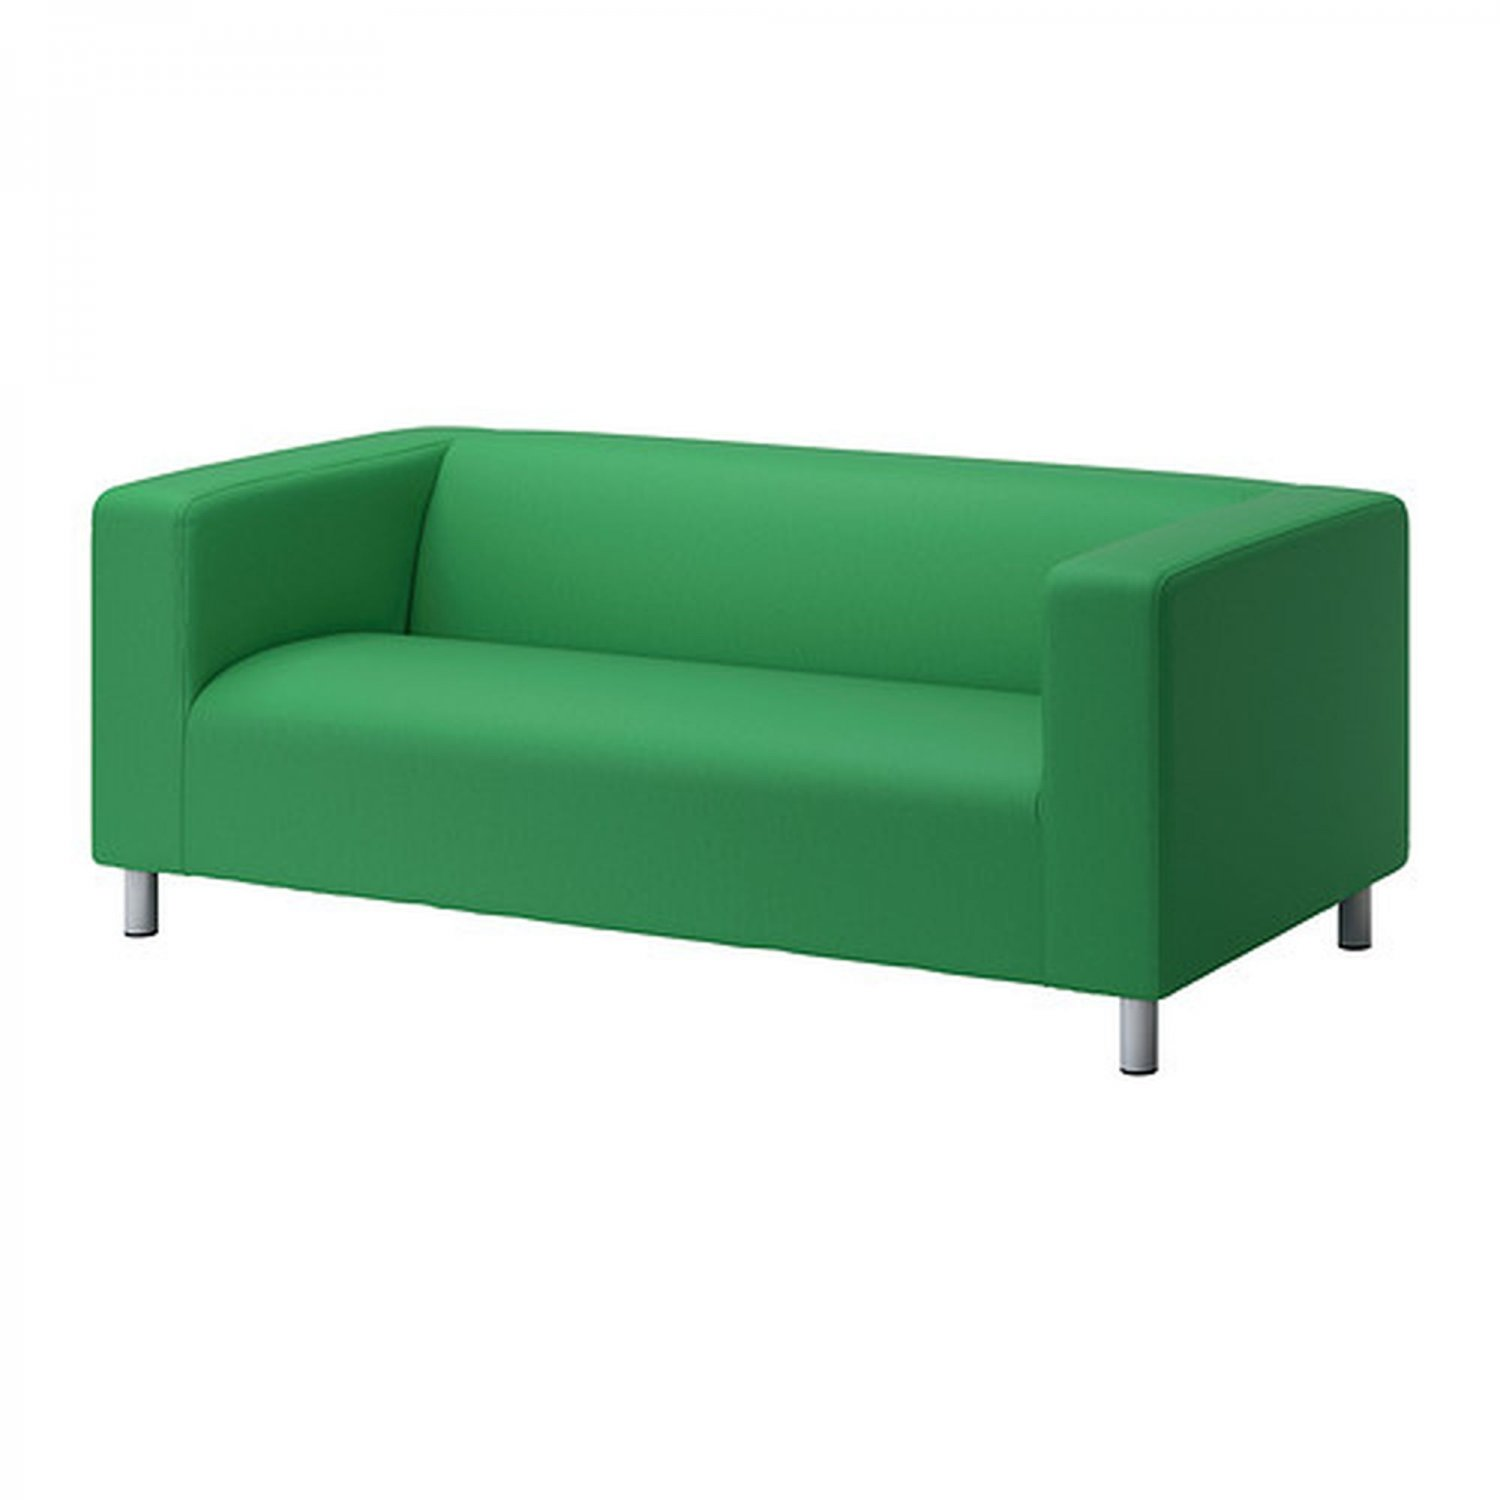 ikea klippan loveseat sofa slipcover cover vissle green